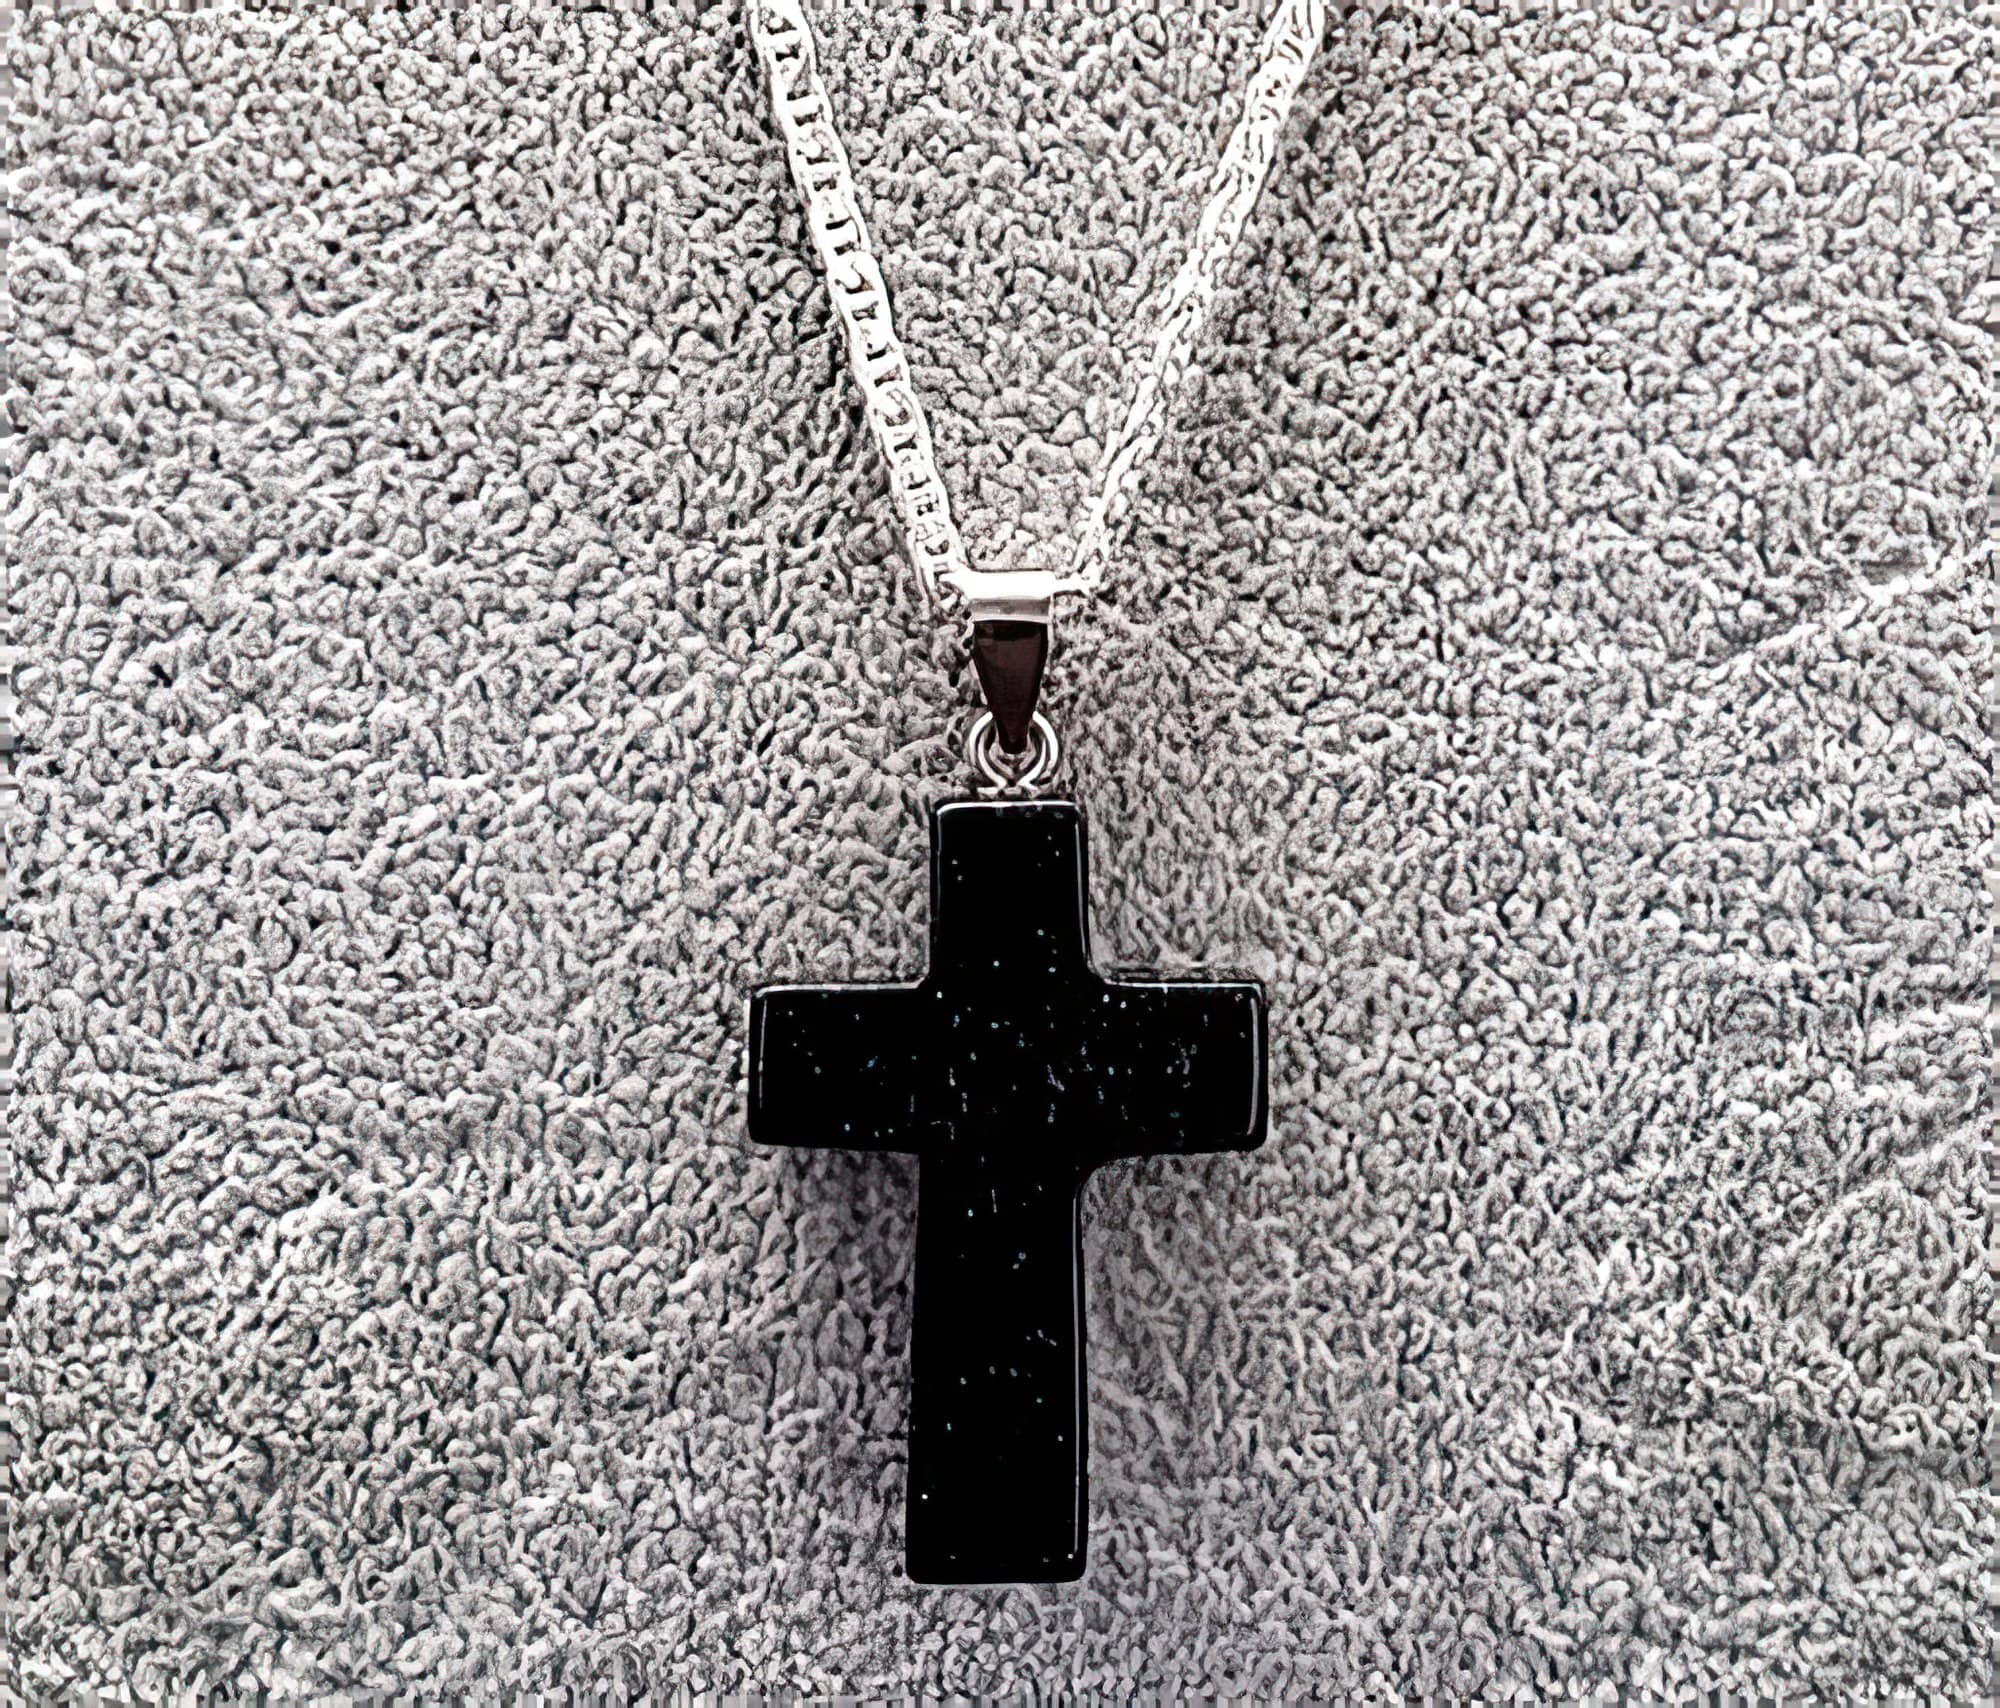 Blue Sand Gemstone 1.6 inch Cross Necklace with Black or White Rope Chain Free Shipping (4395374248030)